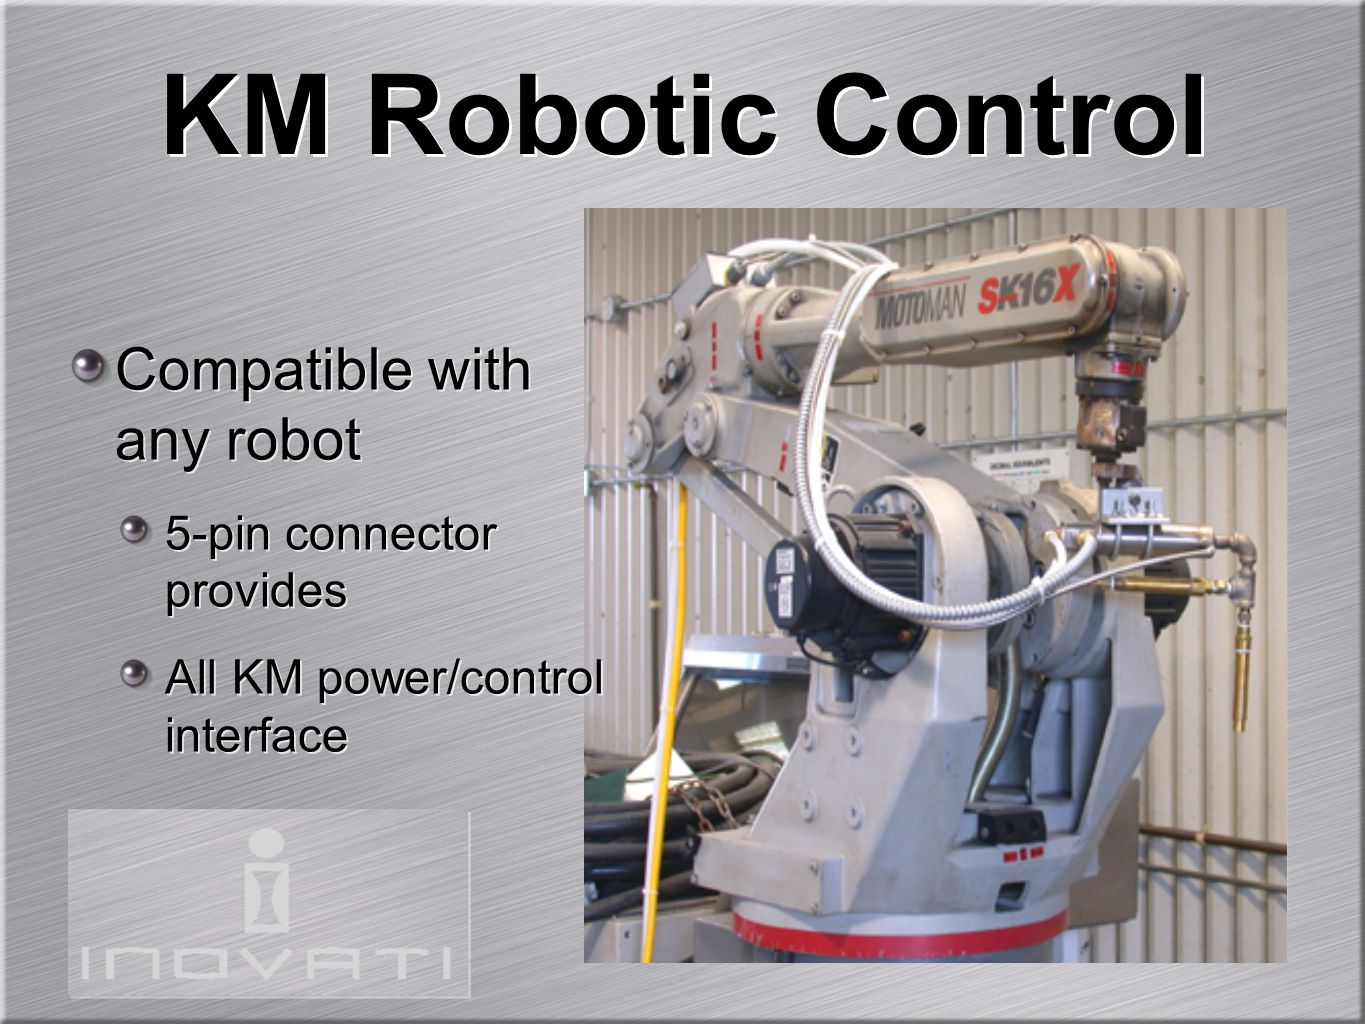 Compatible with any robot 5-pin connector provides All KM power/control interface Compatible with any robot 5-pin connector provides All KM power/control interface KM Robotic Control